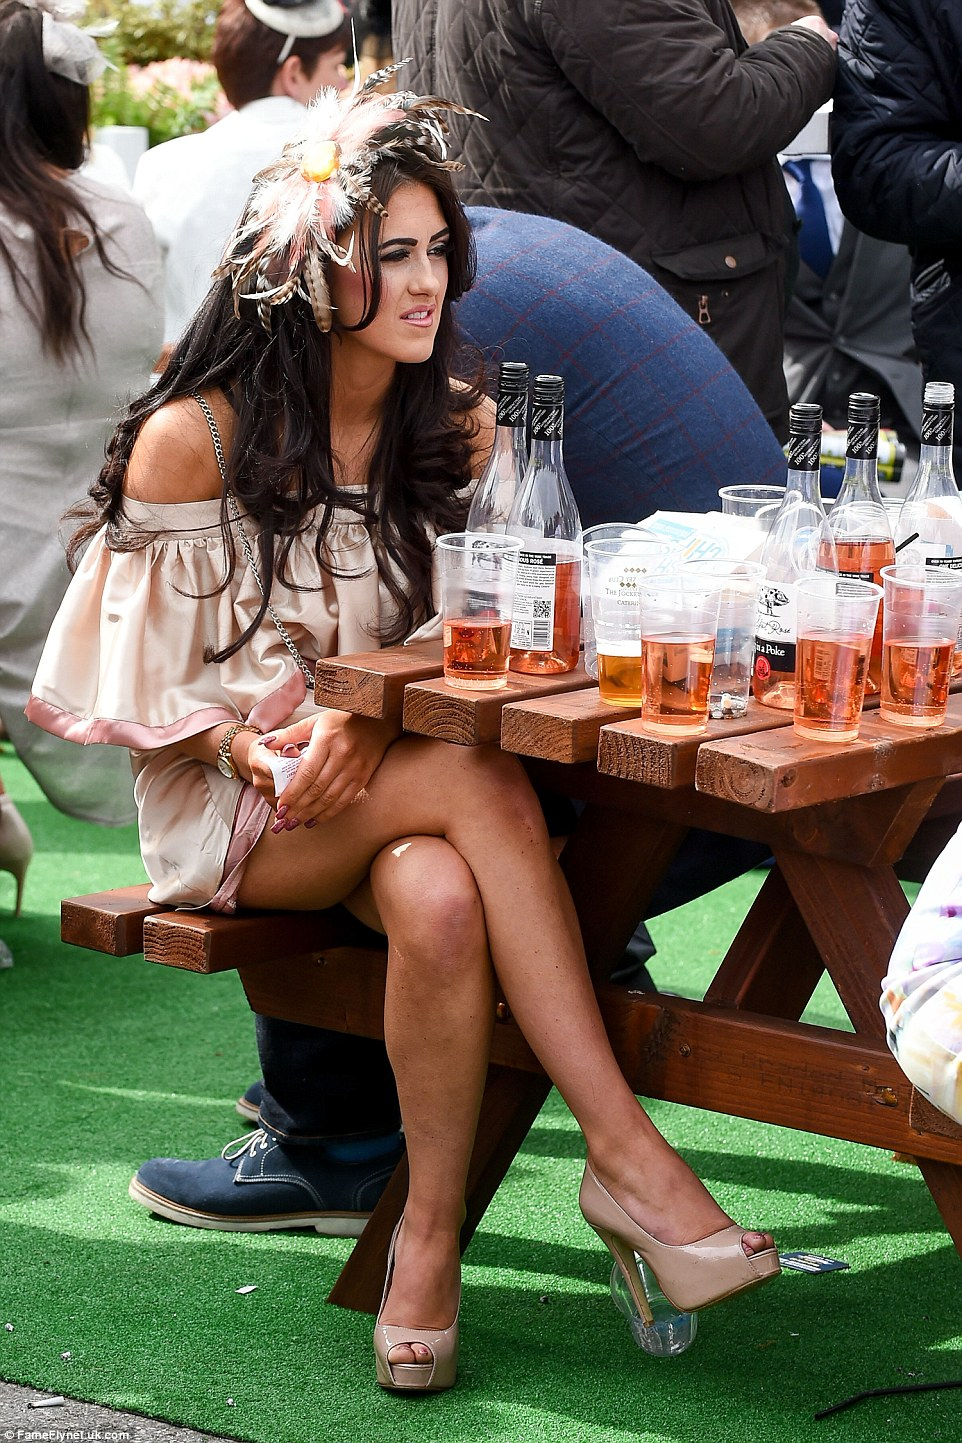 Rose wine seemed to be a very popular tipple for revellers at the second day of the festival